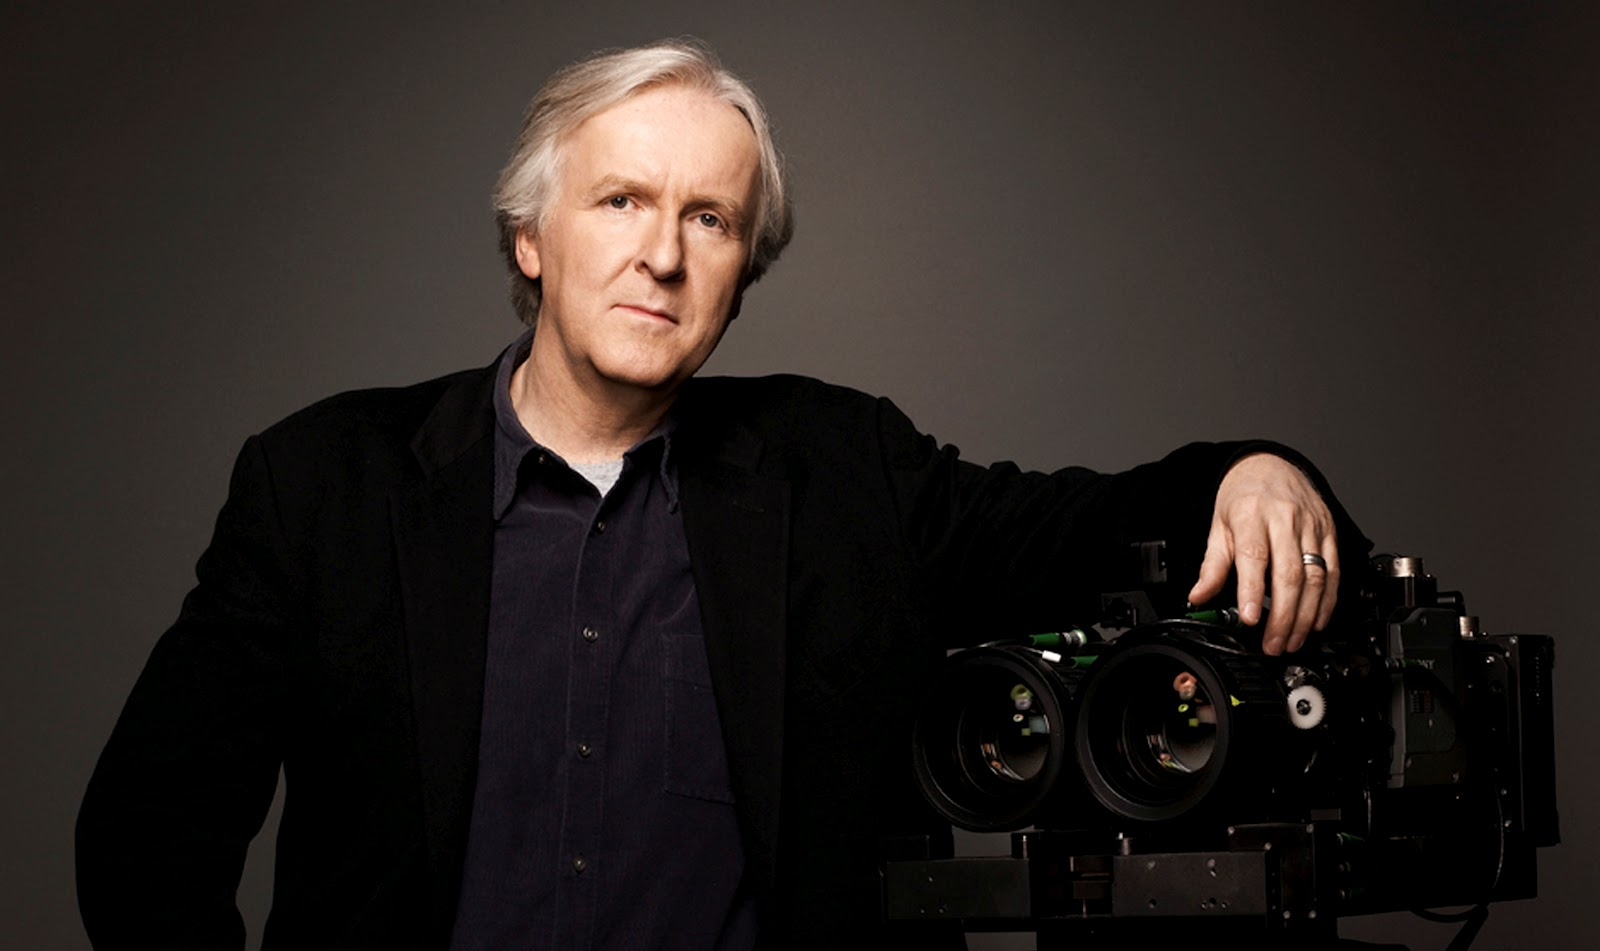 JAMES CAMERON CALLED SEXIST AFTER CLAIMING WONDER WOMAN SHOULD HAVE BEEN MORE FEMINIST